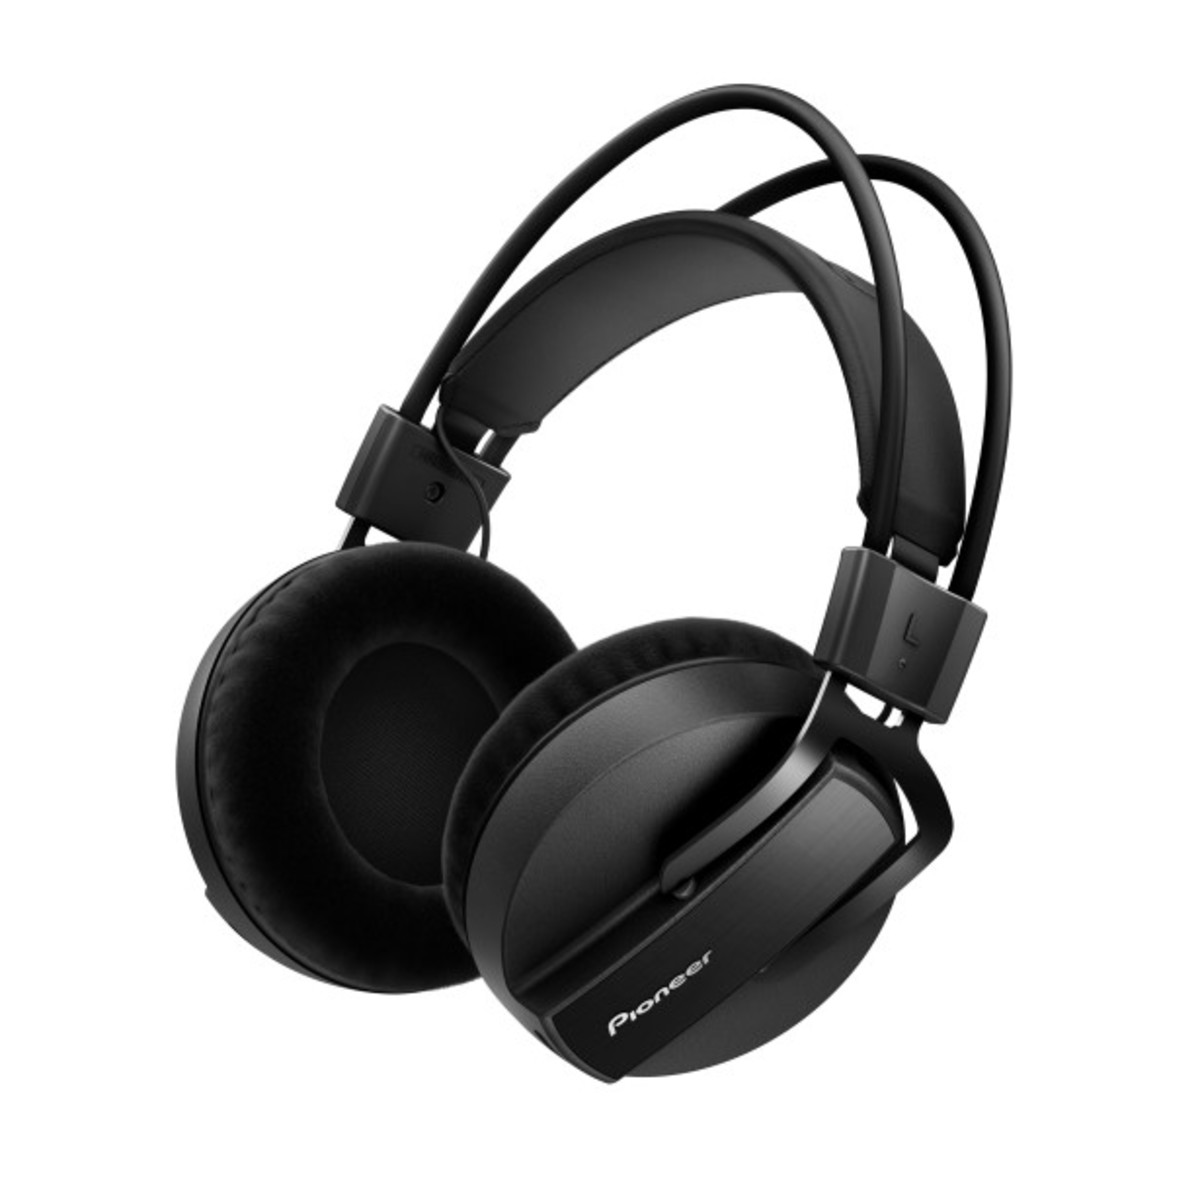 Pioneer HRM-7 Headphones Coming With 5-40k Response